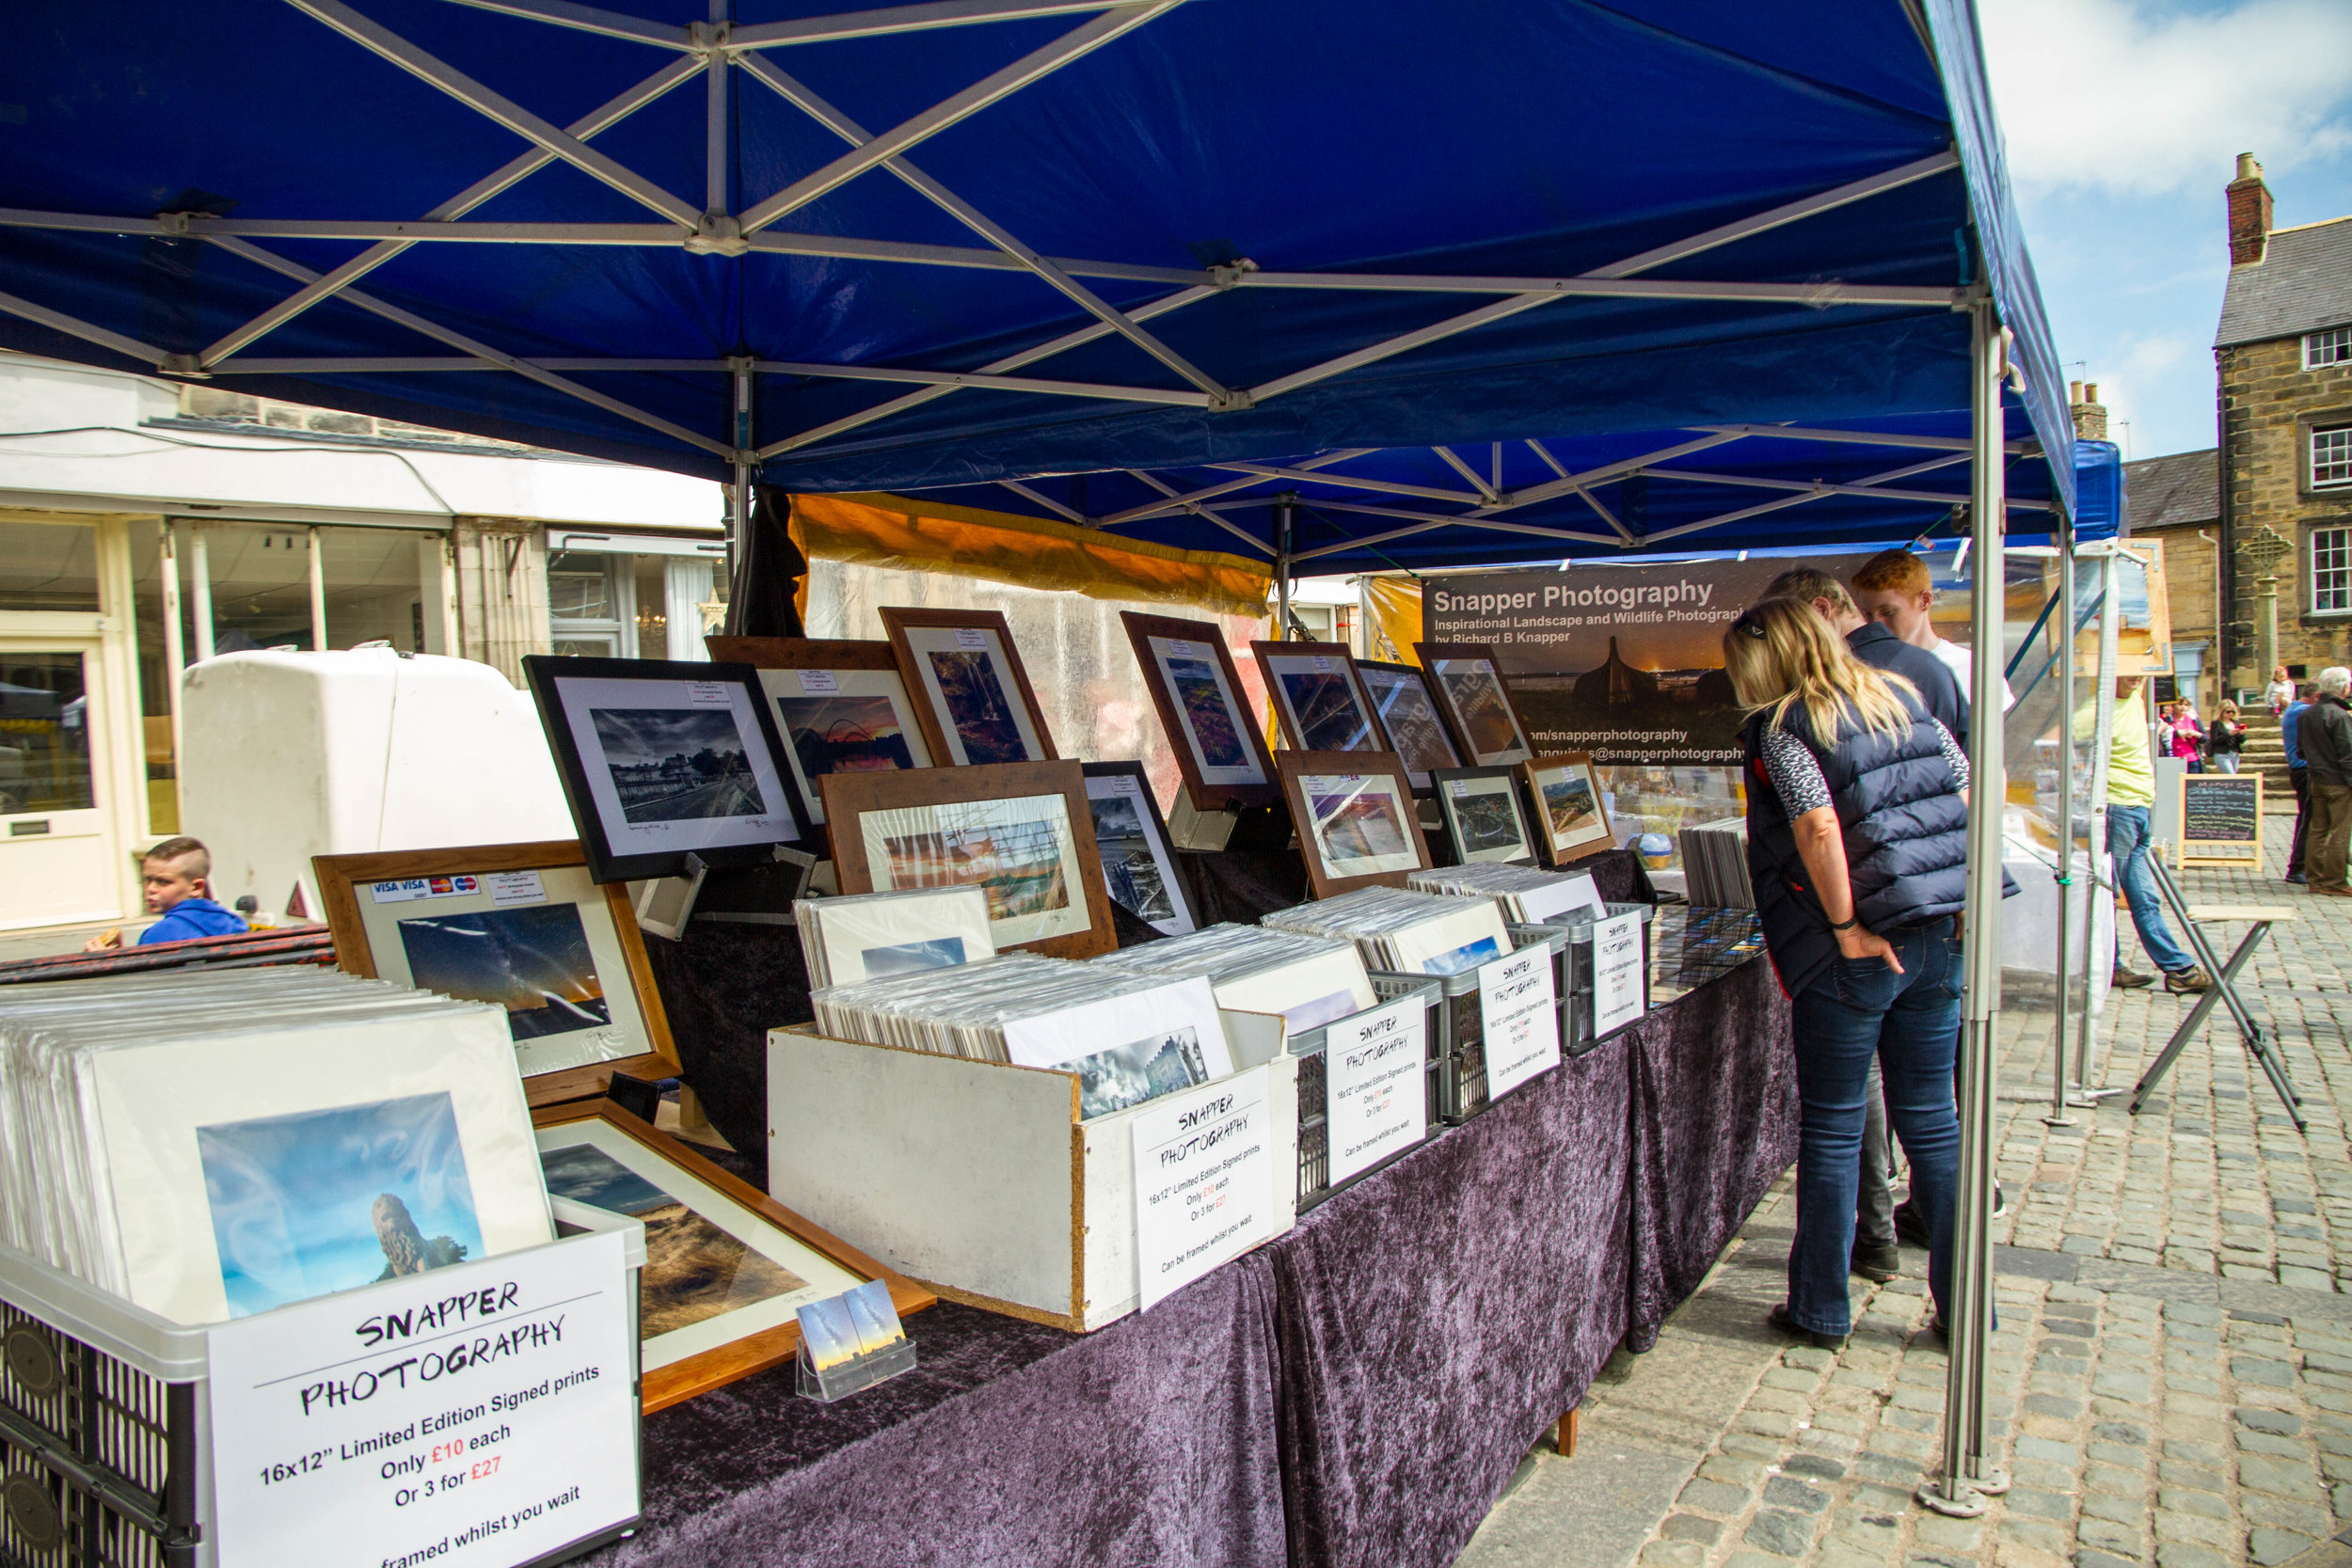 Snapper Photography at Alnwick Market